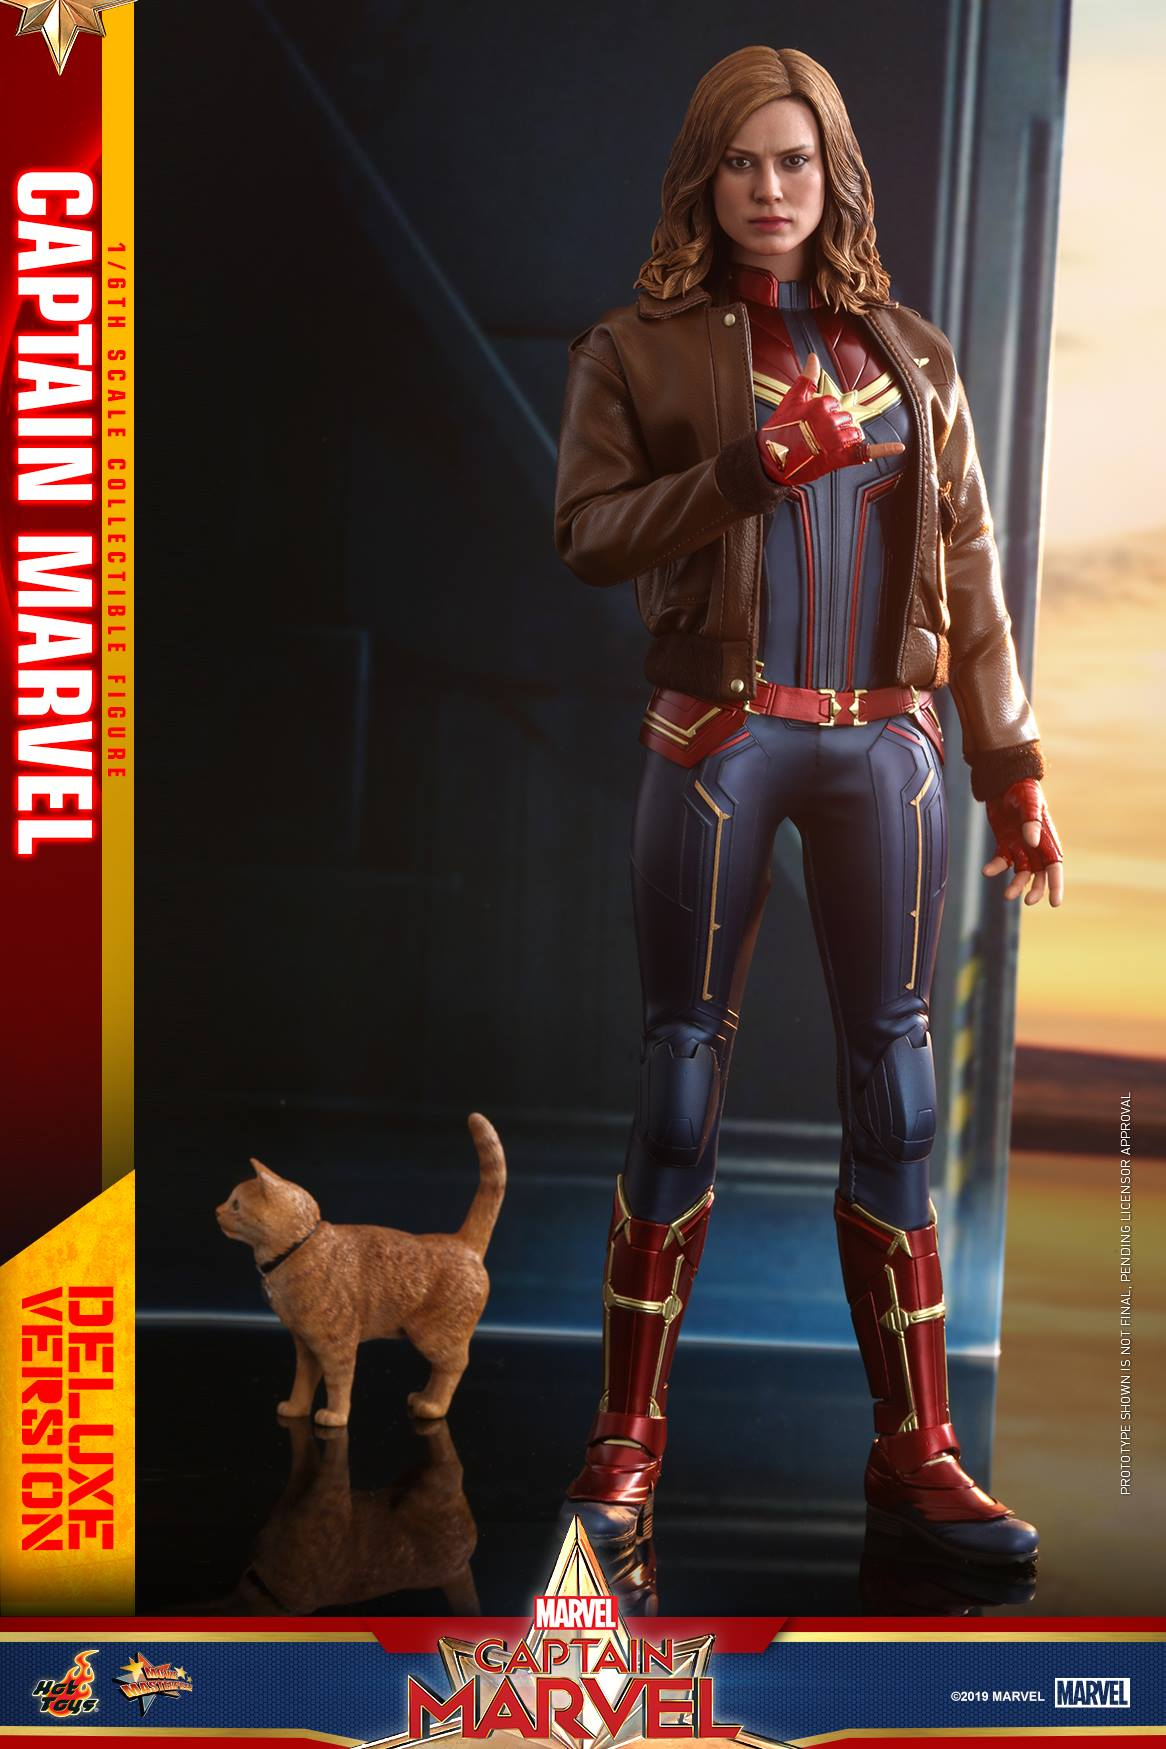 hot toys captain marvel & goose the cat figures photos & order info